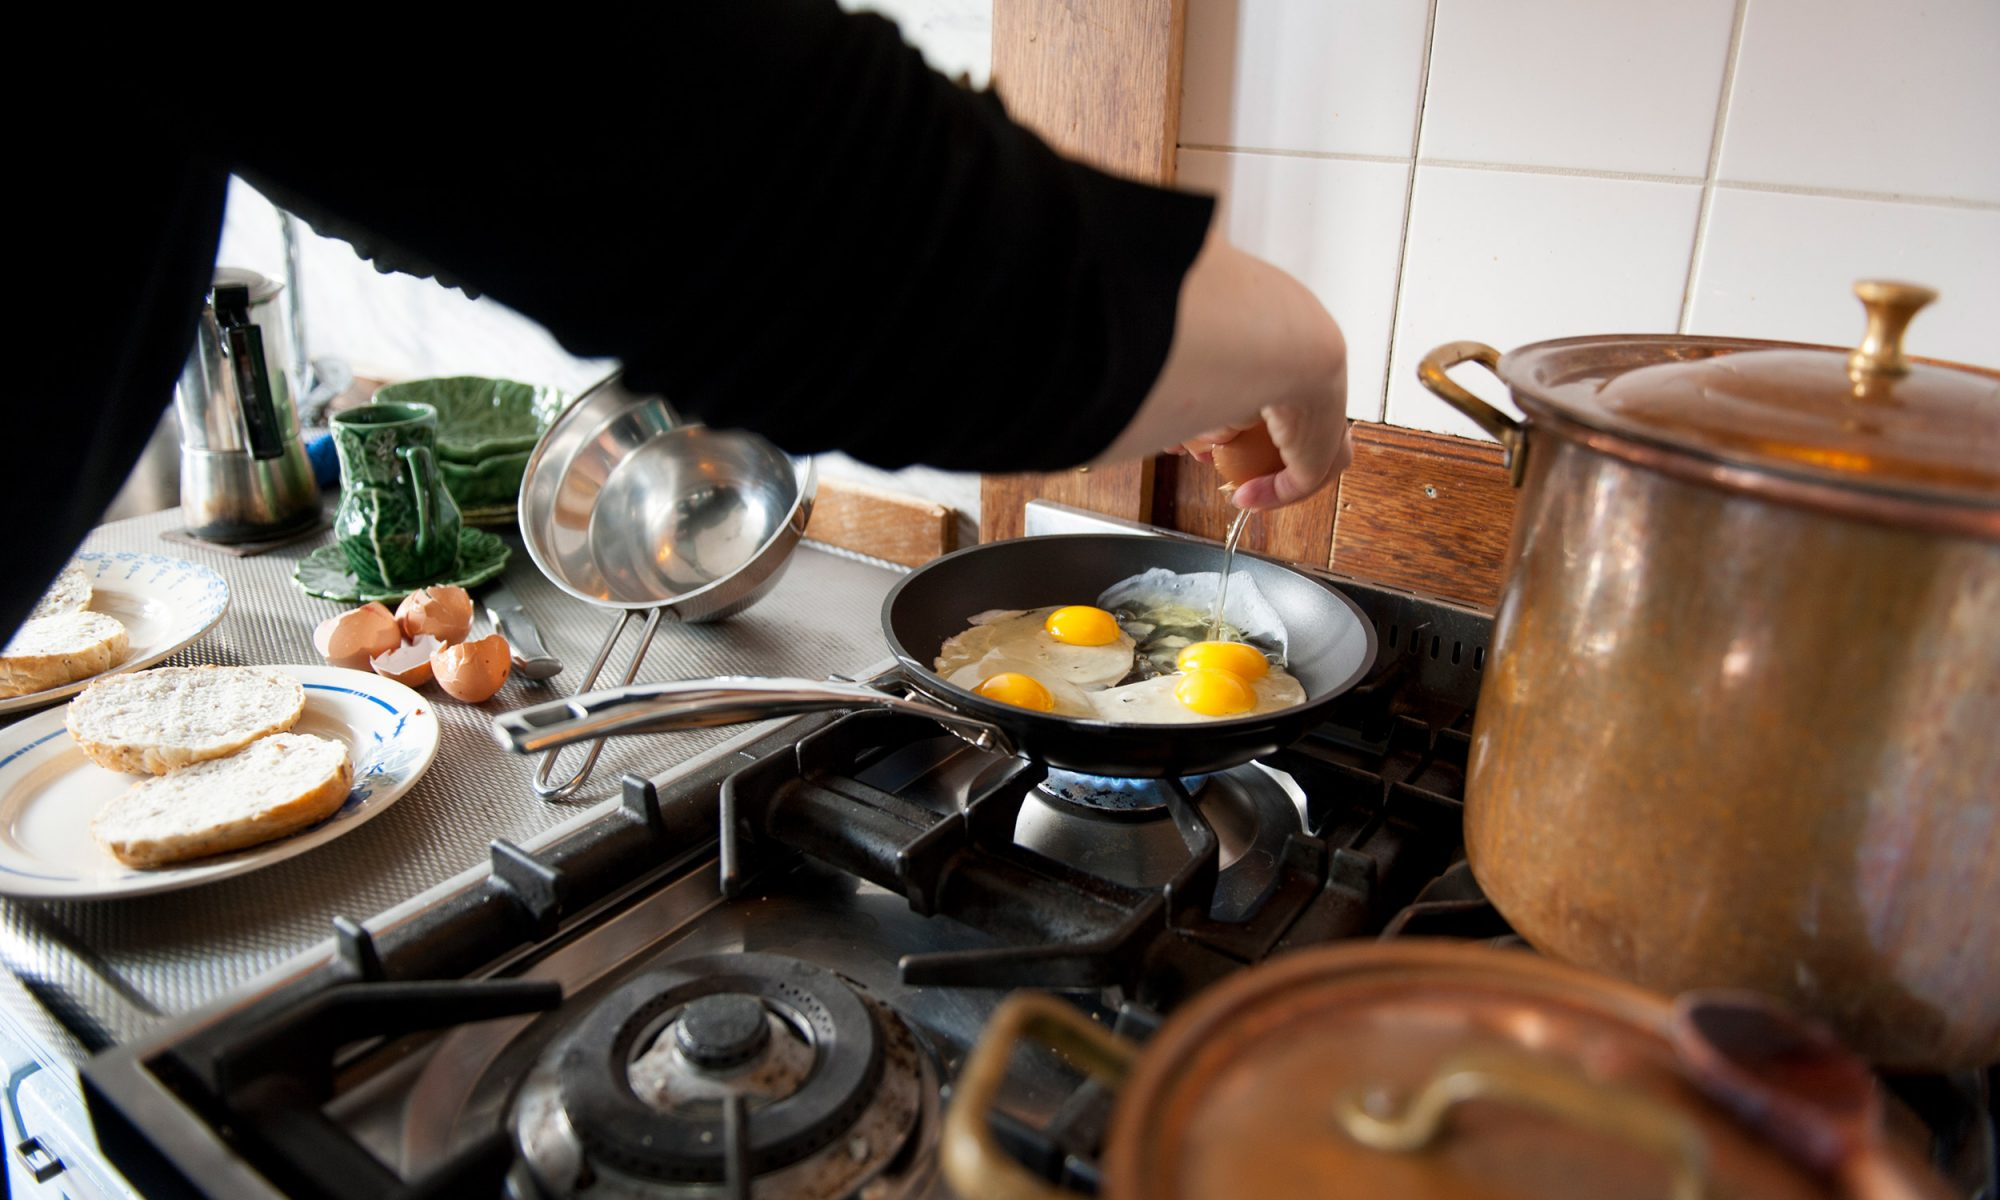 EC: 7 Basic Breakfast Recipes Every Home Cook Should Master